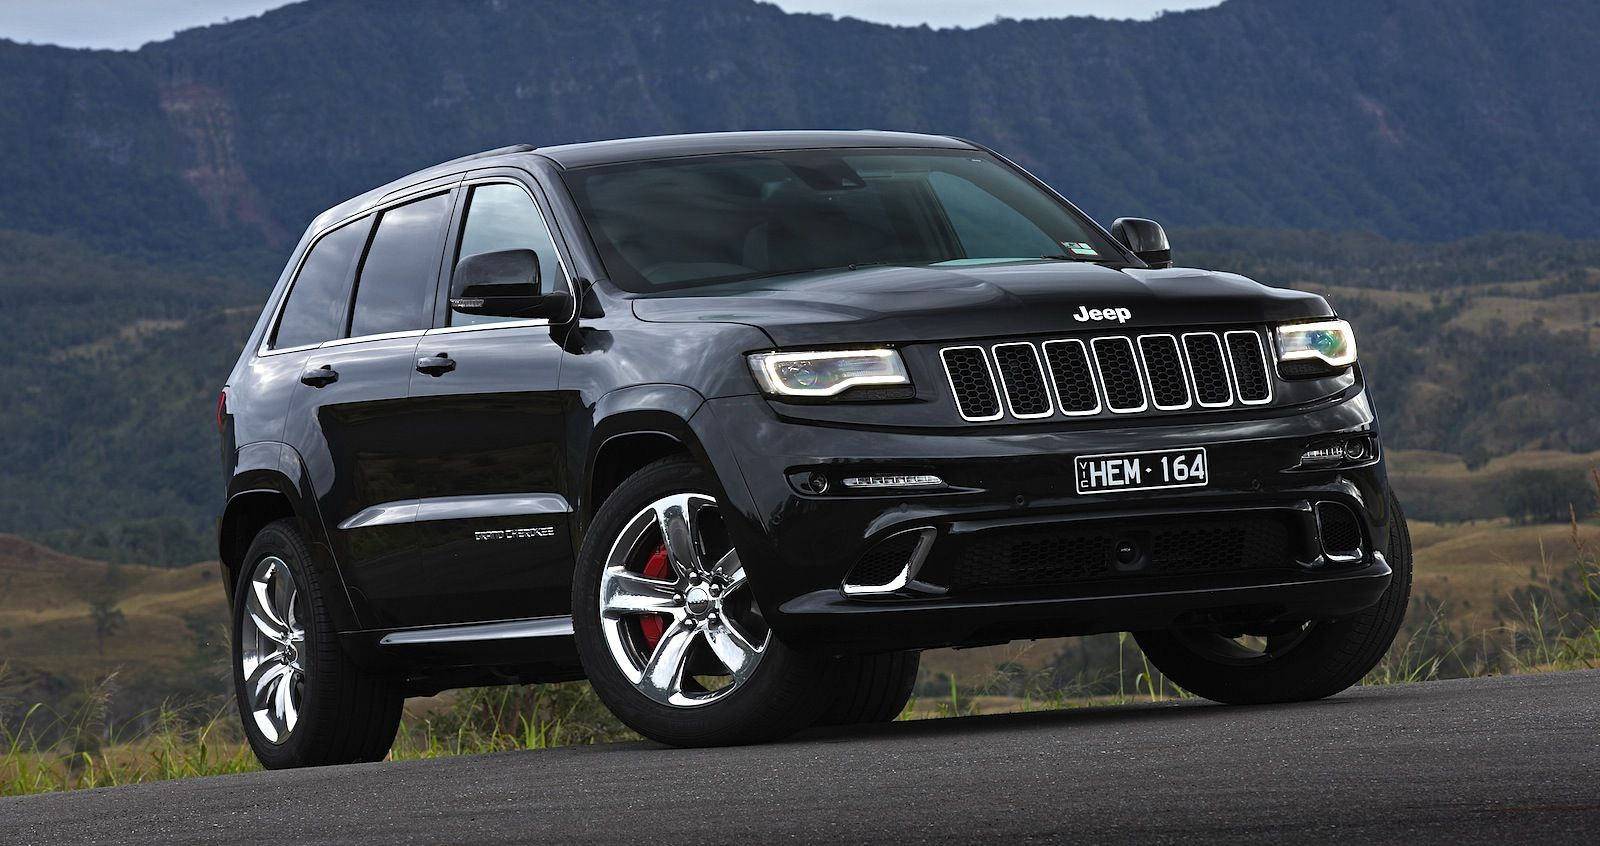 Jeep grand cherokee wrangler prices rise by up to 3000 http